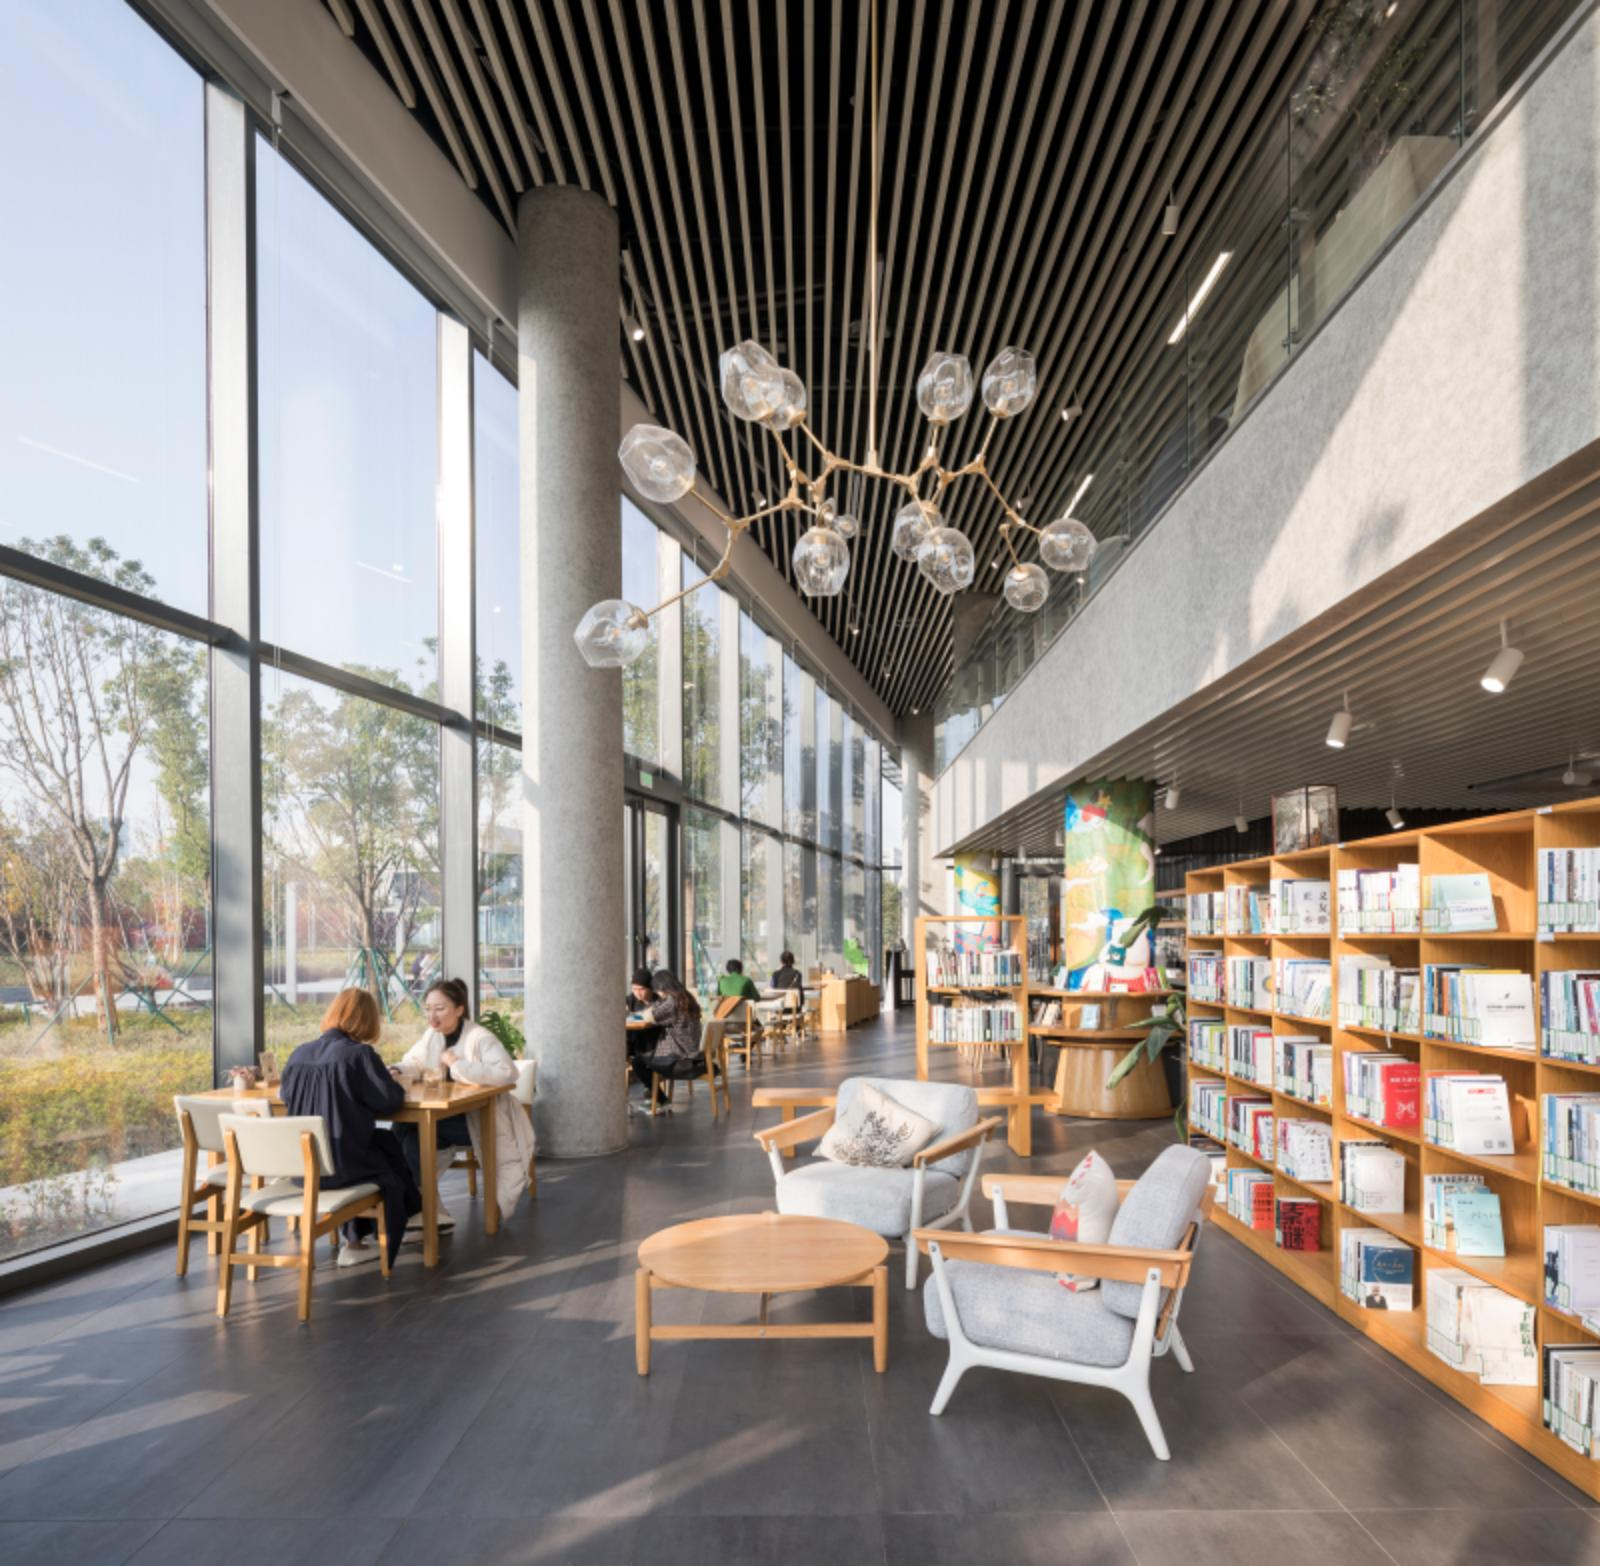 Ningbo New Library